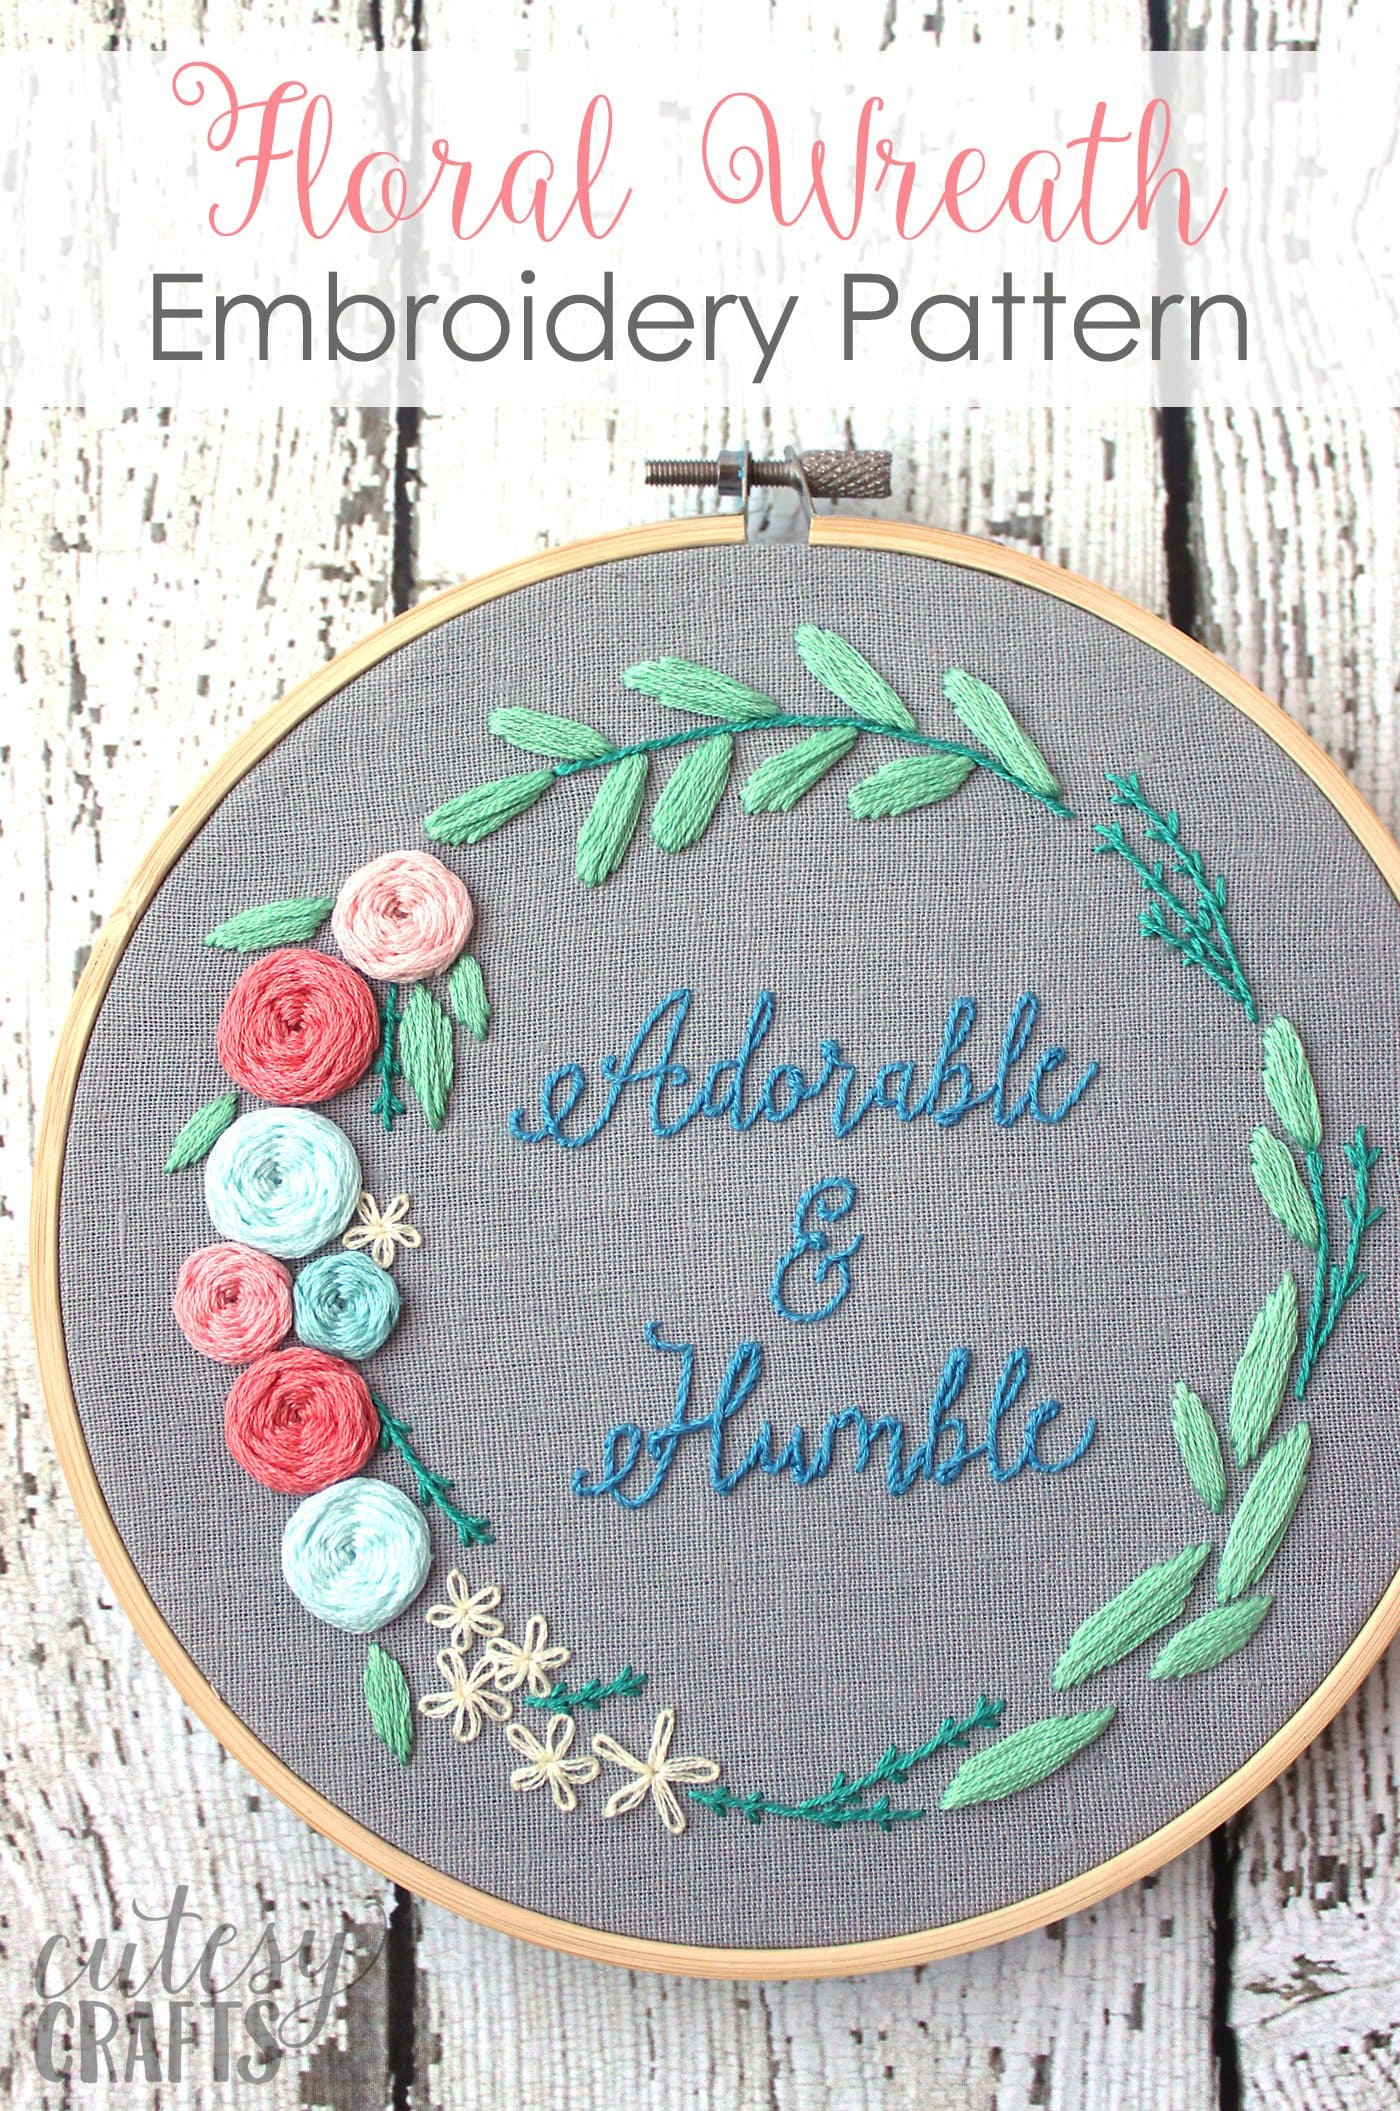 How To Read Embroidery Patterns Adorable And Humble Free Floral Wreath Hand Embroidery Pattern